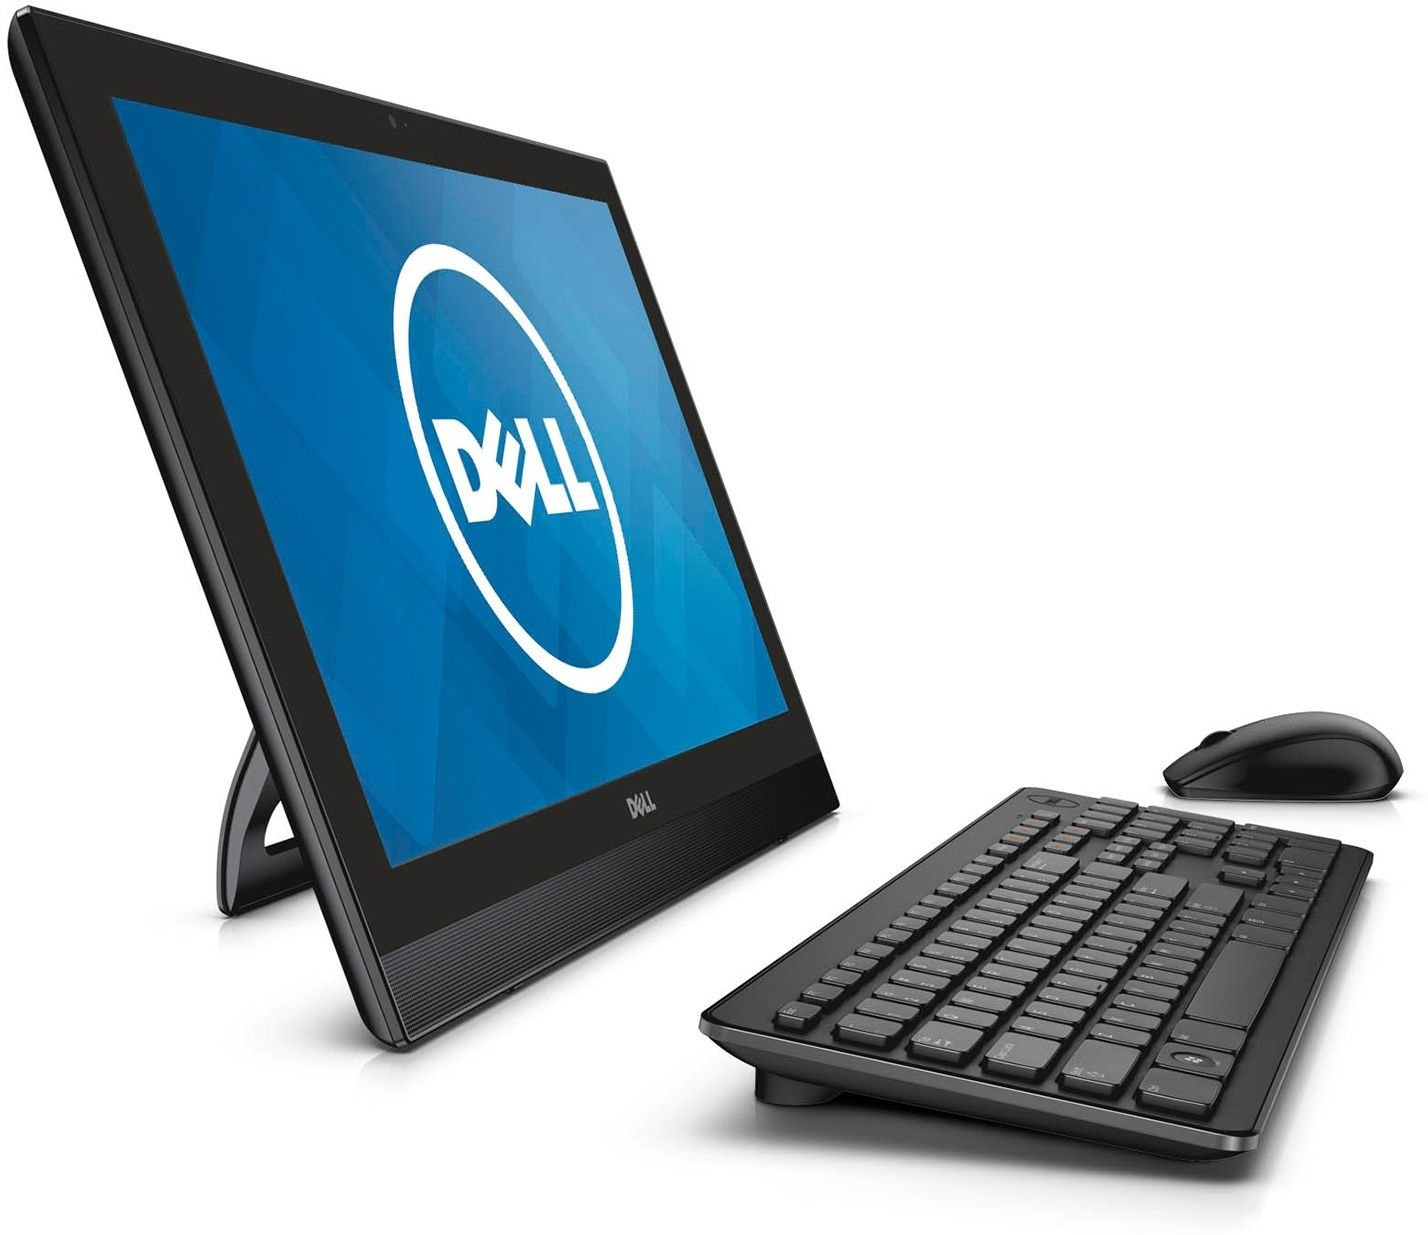 Dell - (Pentium Quad Core/2 GB DDR3/500 GB/Windows 8.1)(Black, 48.95 cm x 31.26 cm x 2.58 cm, 3.1 kg, 19.5 Inch Screen)   Desktop  (Dell)